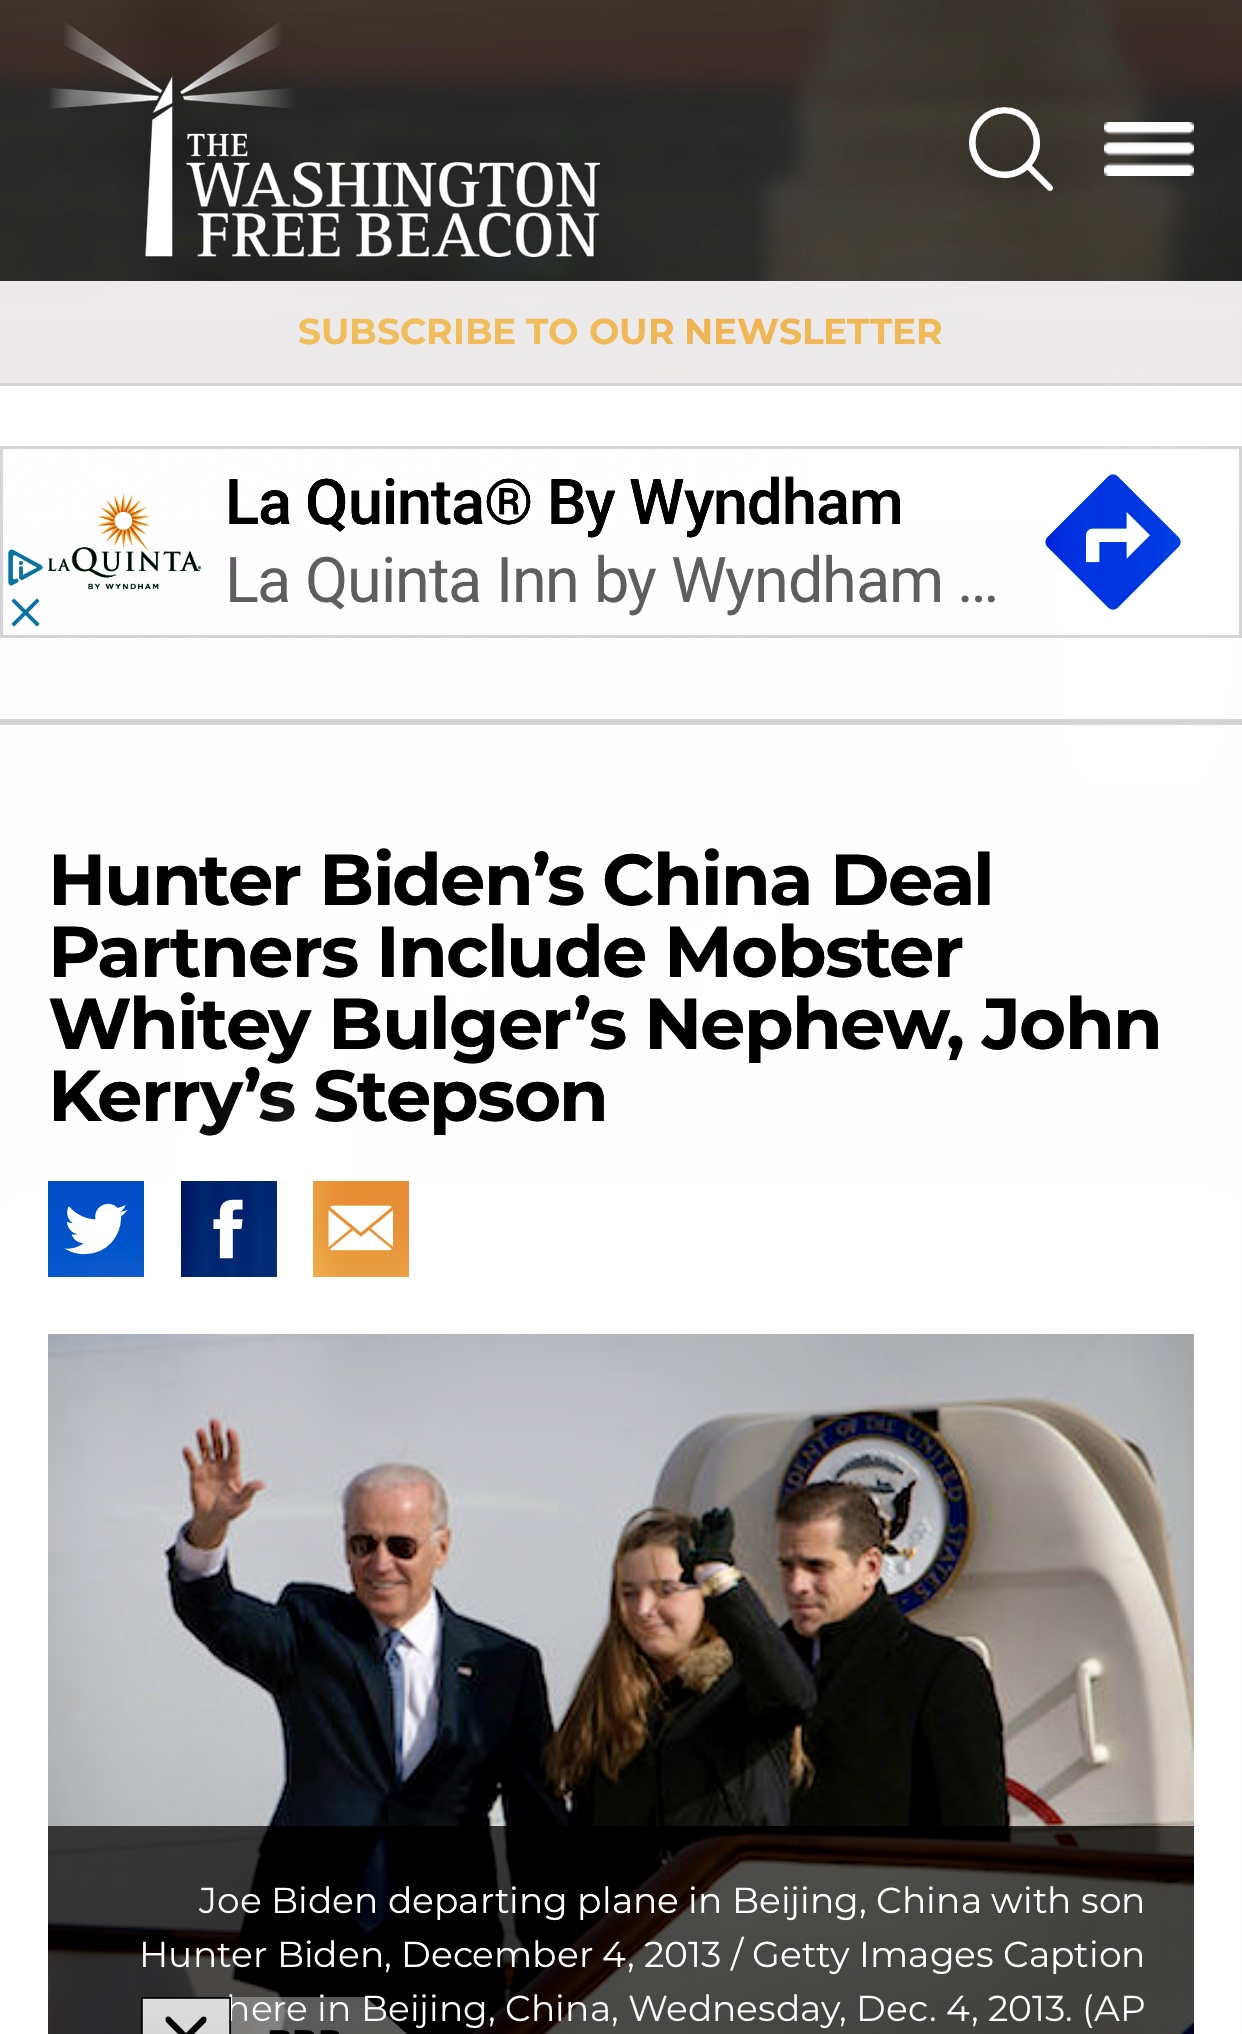 Hunter Biden's China Deal Partners Include Mobster Whitey Bulger's Nephew, John Kerry's Stepson – Washington Free Beacon